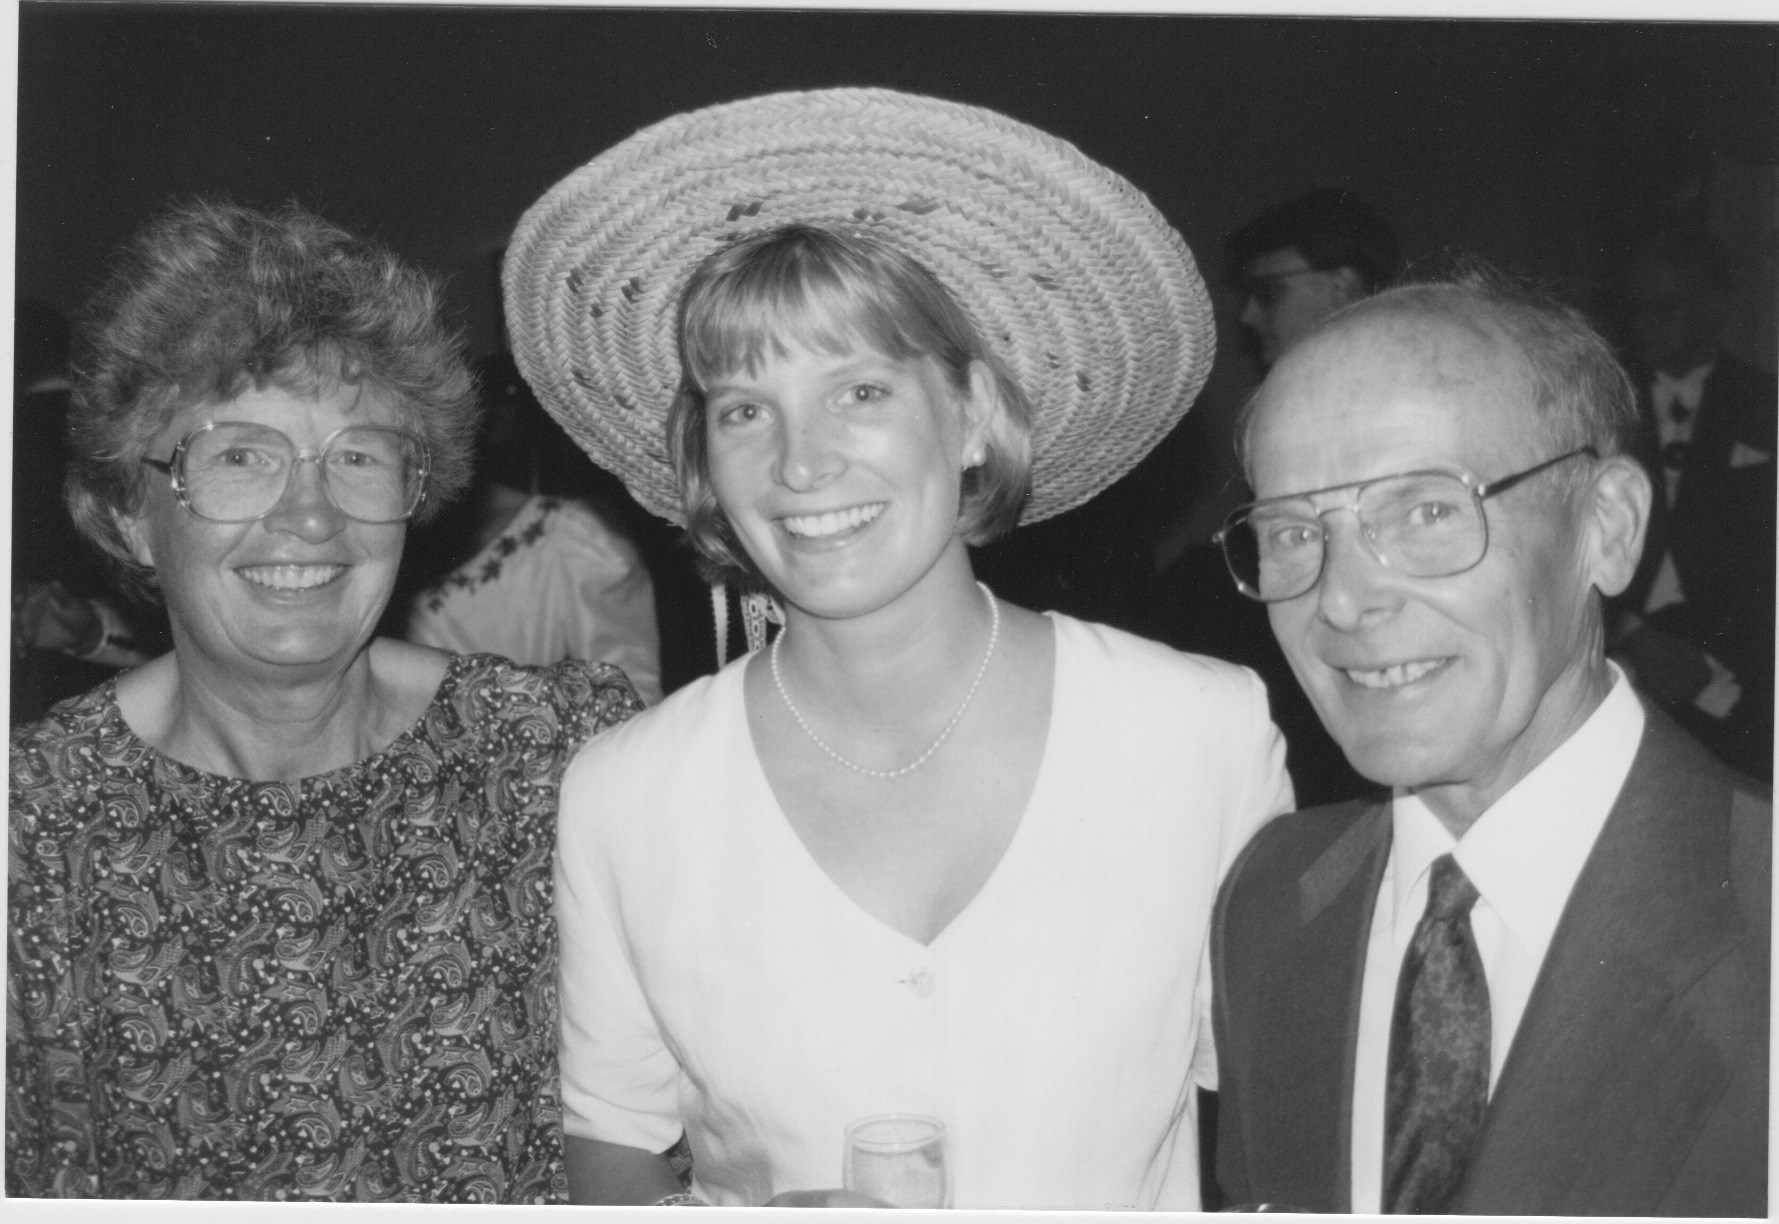 Jane, Ruthie, and Peter, Sept 3rd 1994 at my wedding (Great hat Ruthie!)